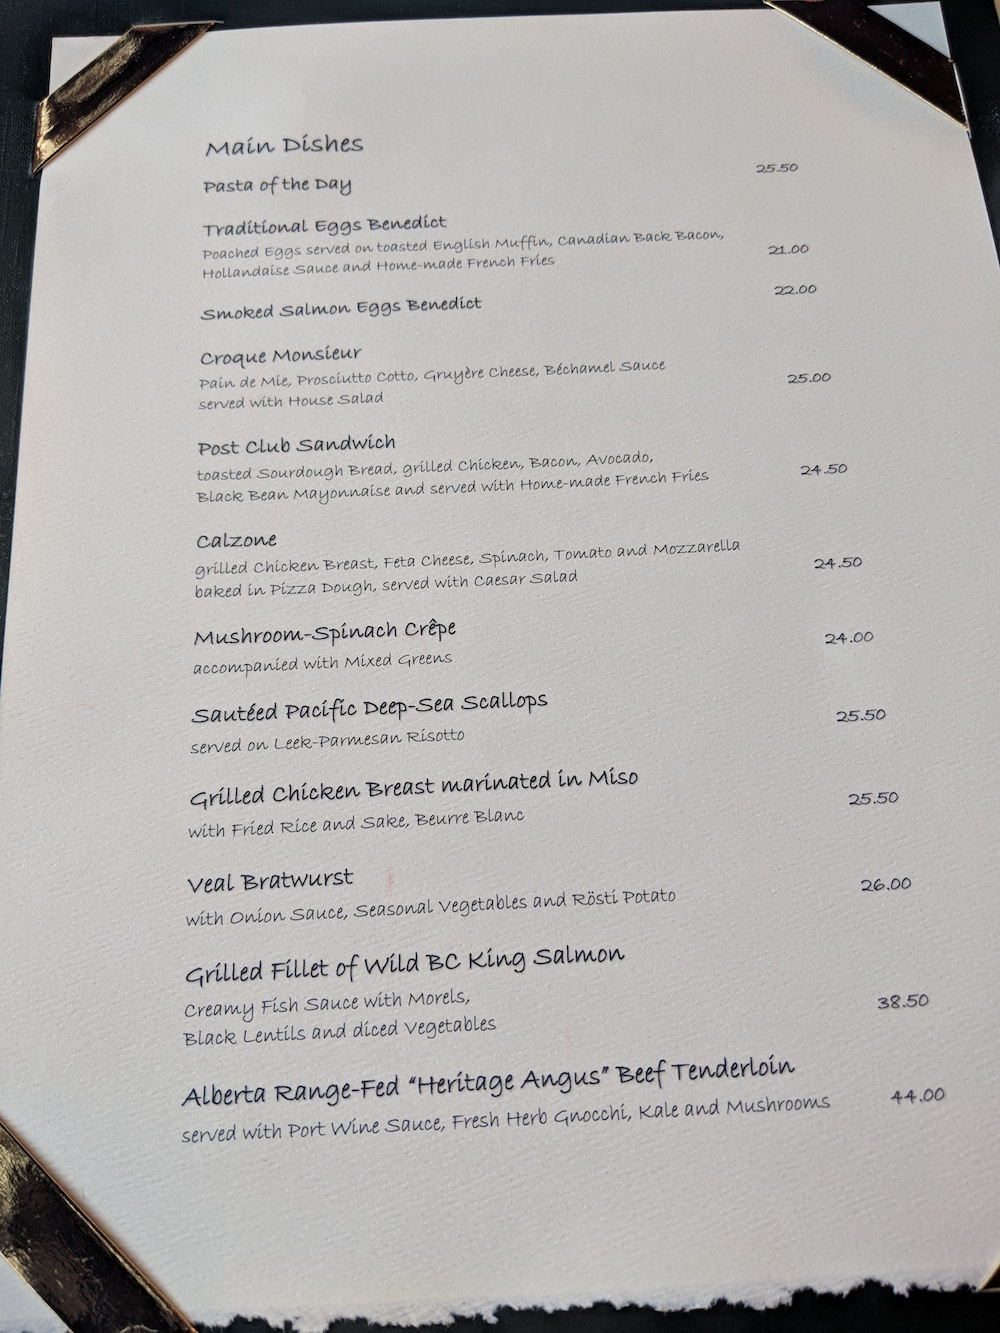 Lunch Menu at the Post Hotel